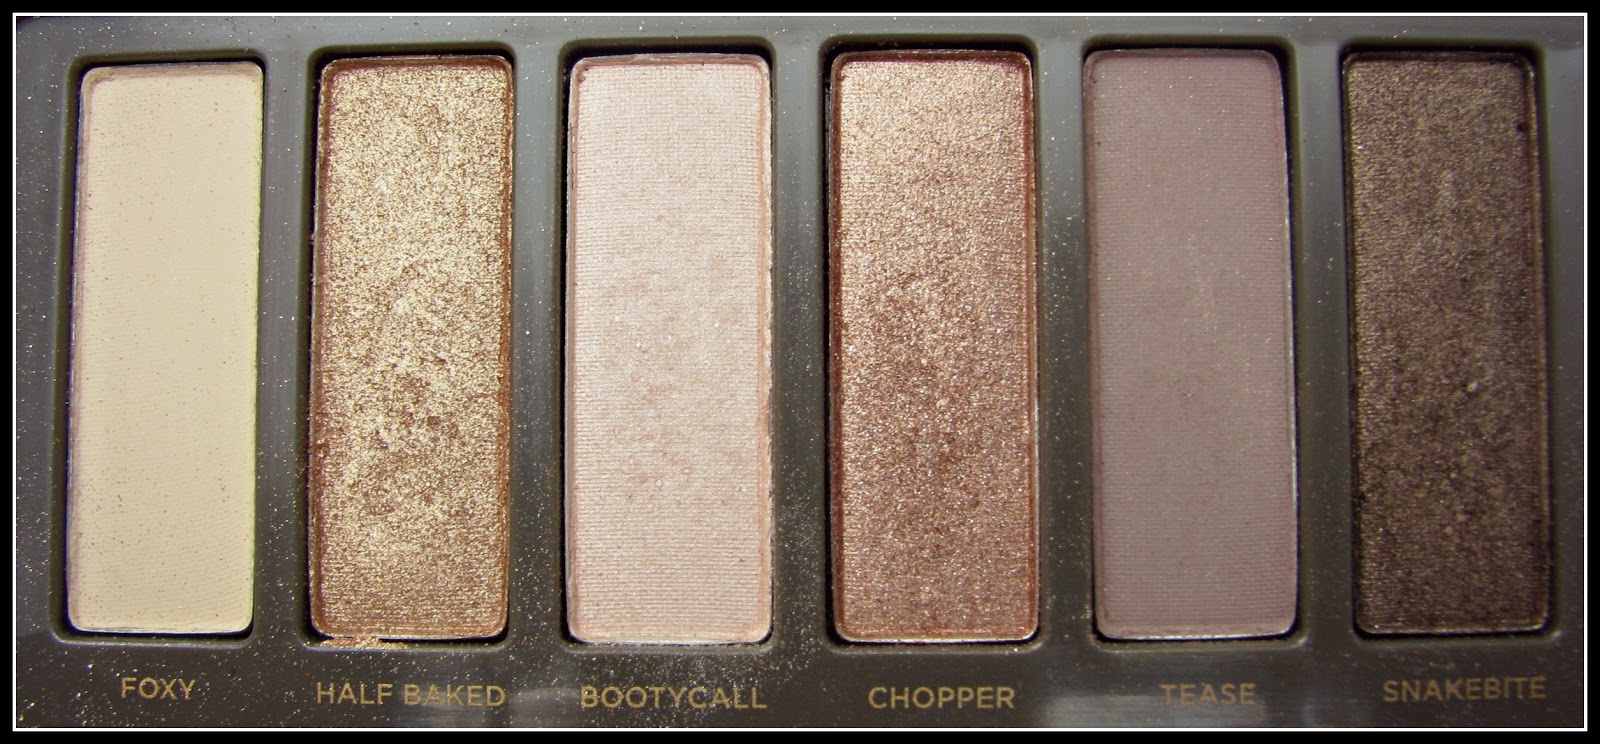 Ingenue Comparison Urban Decay Naked 2 Vs Too Faced -1587